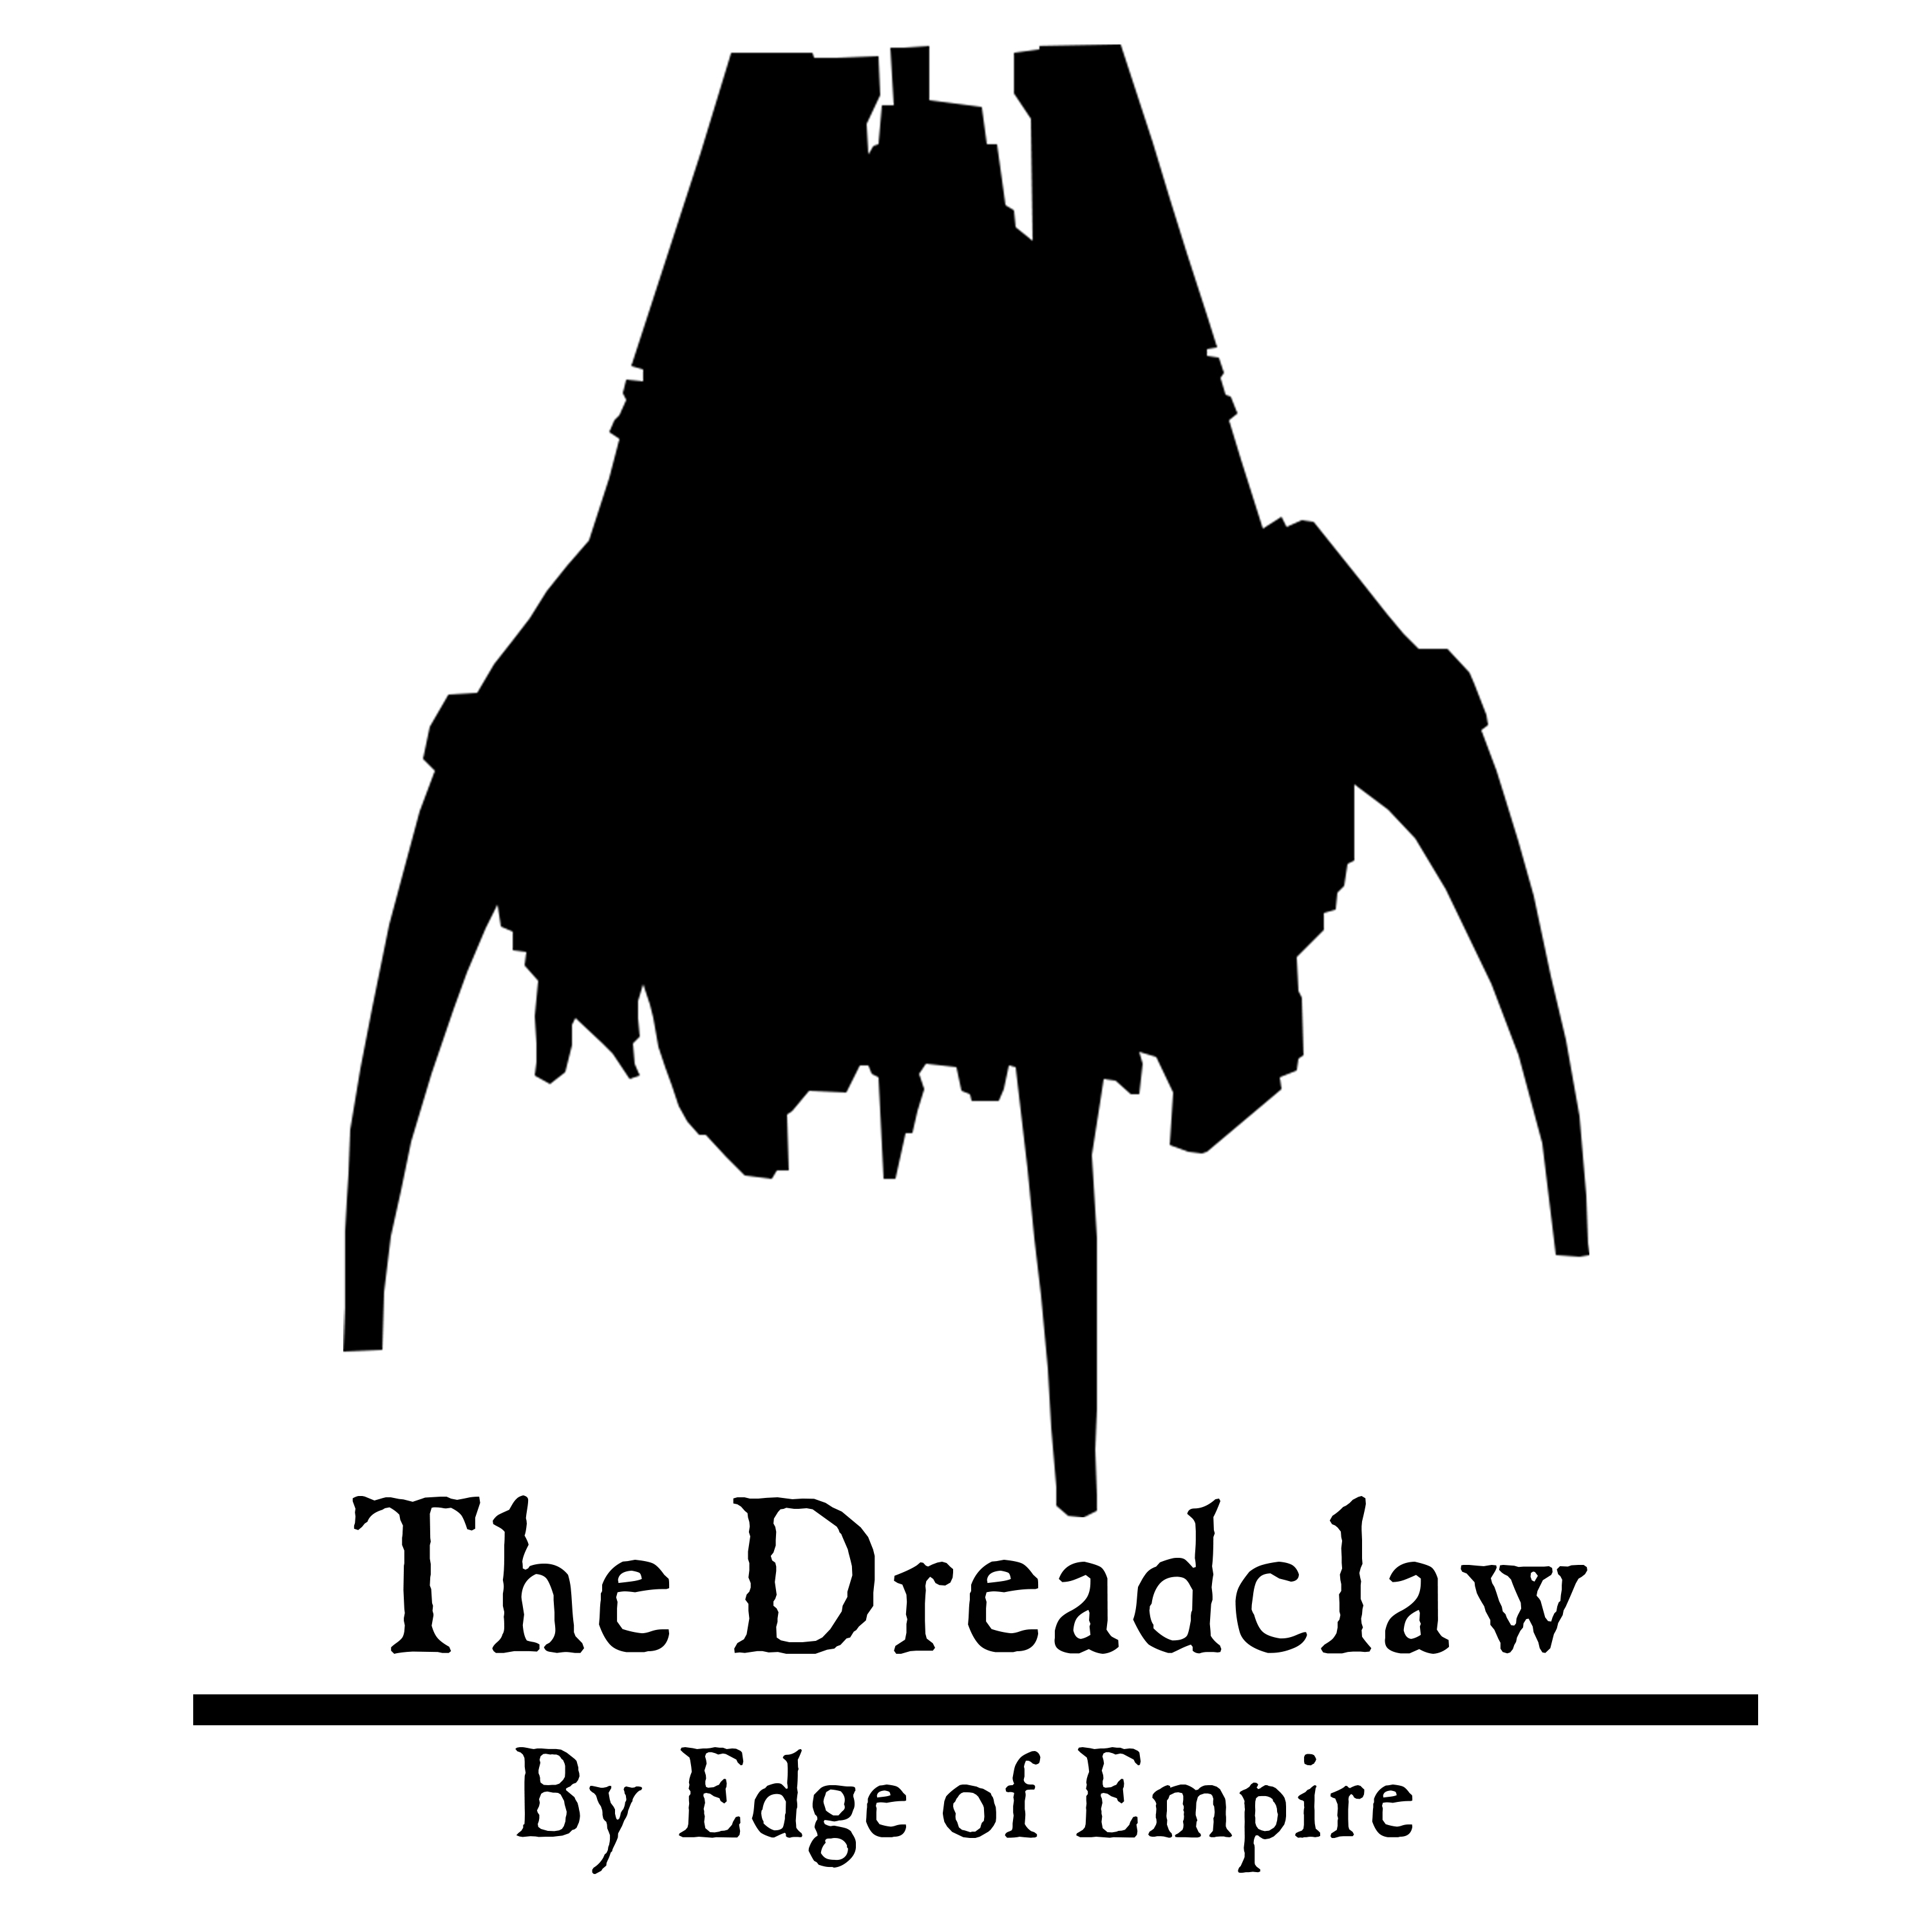 The Dreadclaw 017 – Company of Legends March 2019 Traitors Lists